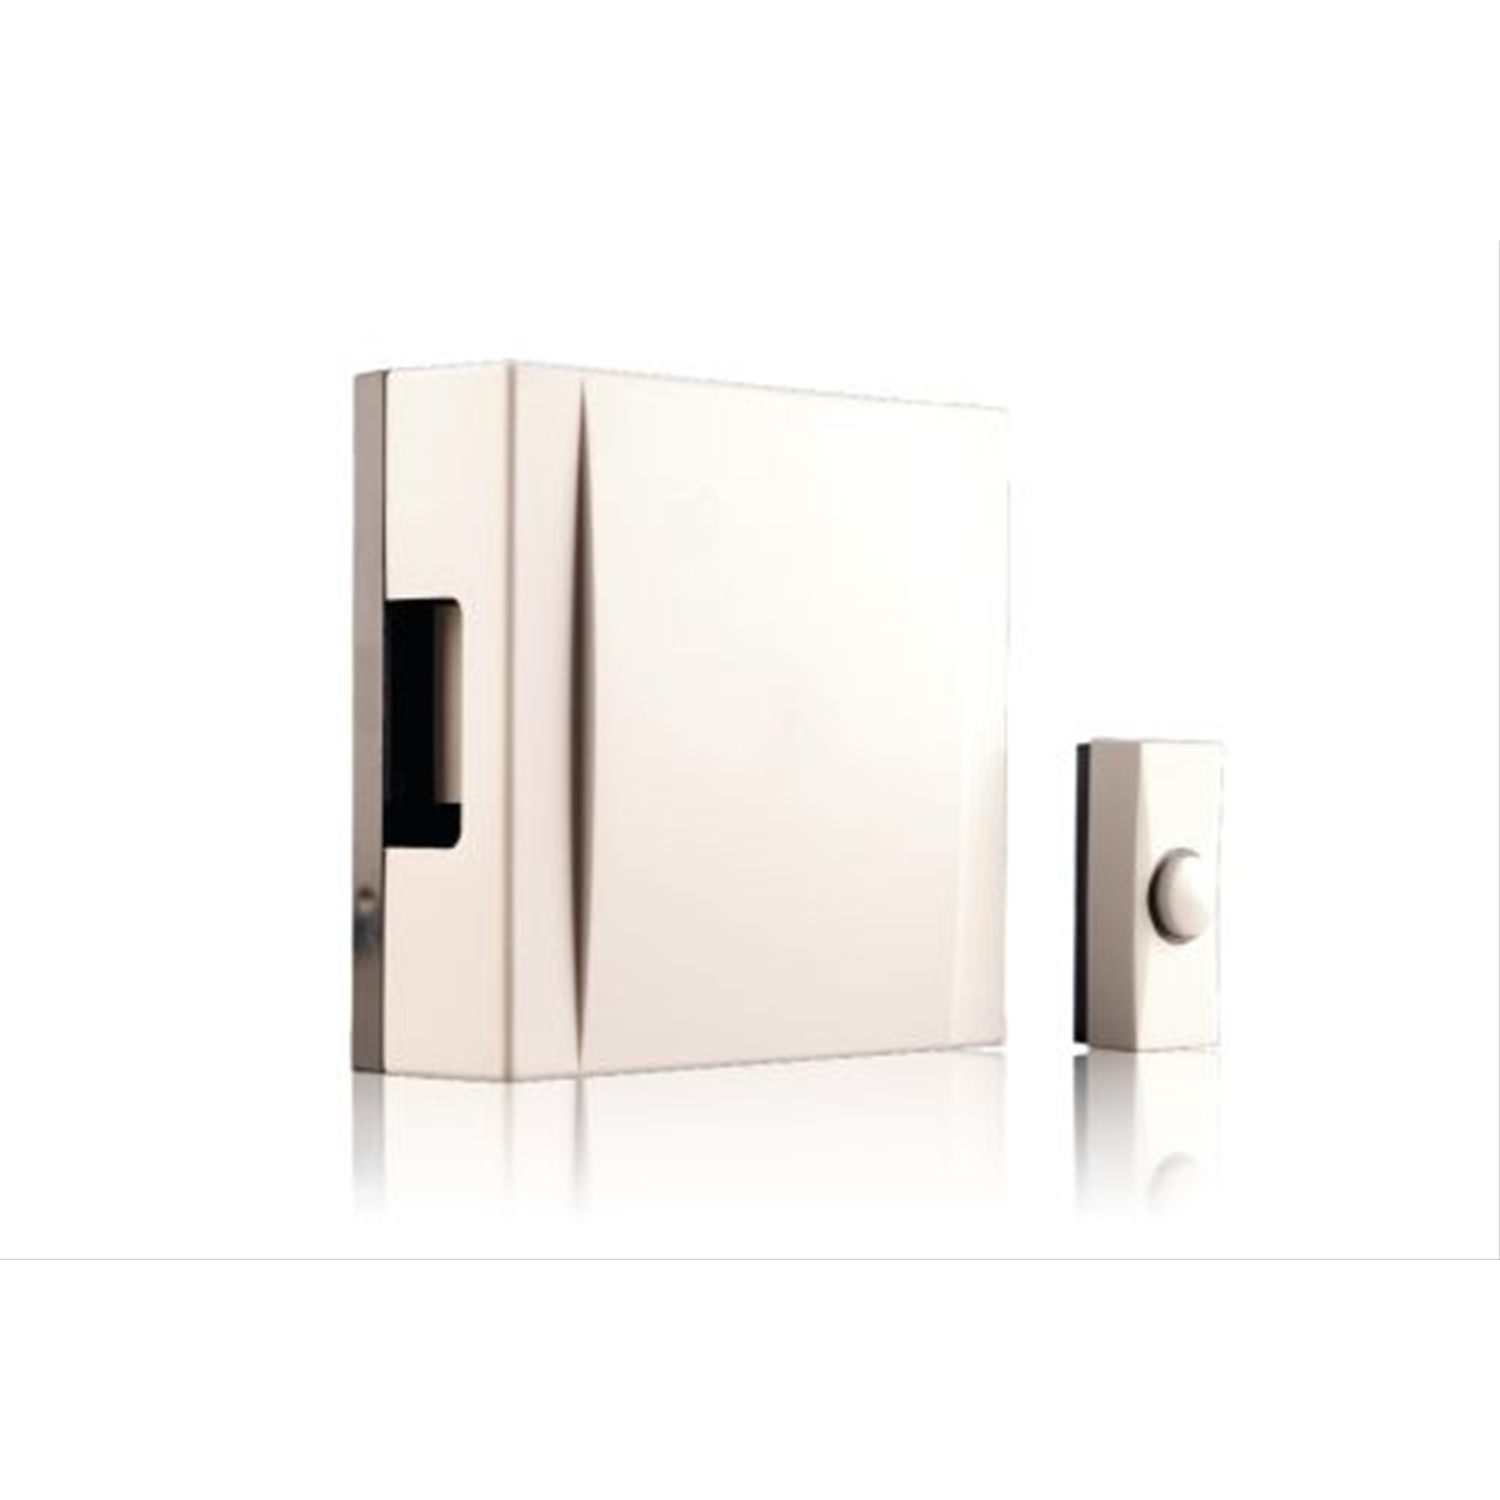 Image of Byron Wired Doorbell Chime Kit Complete